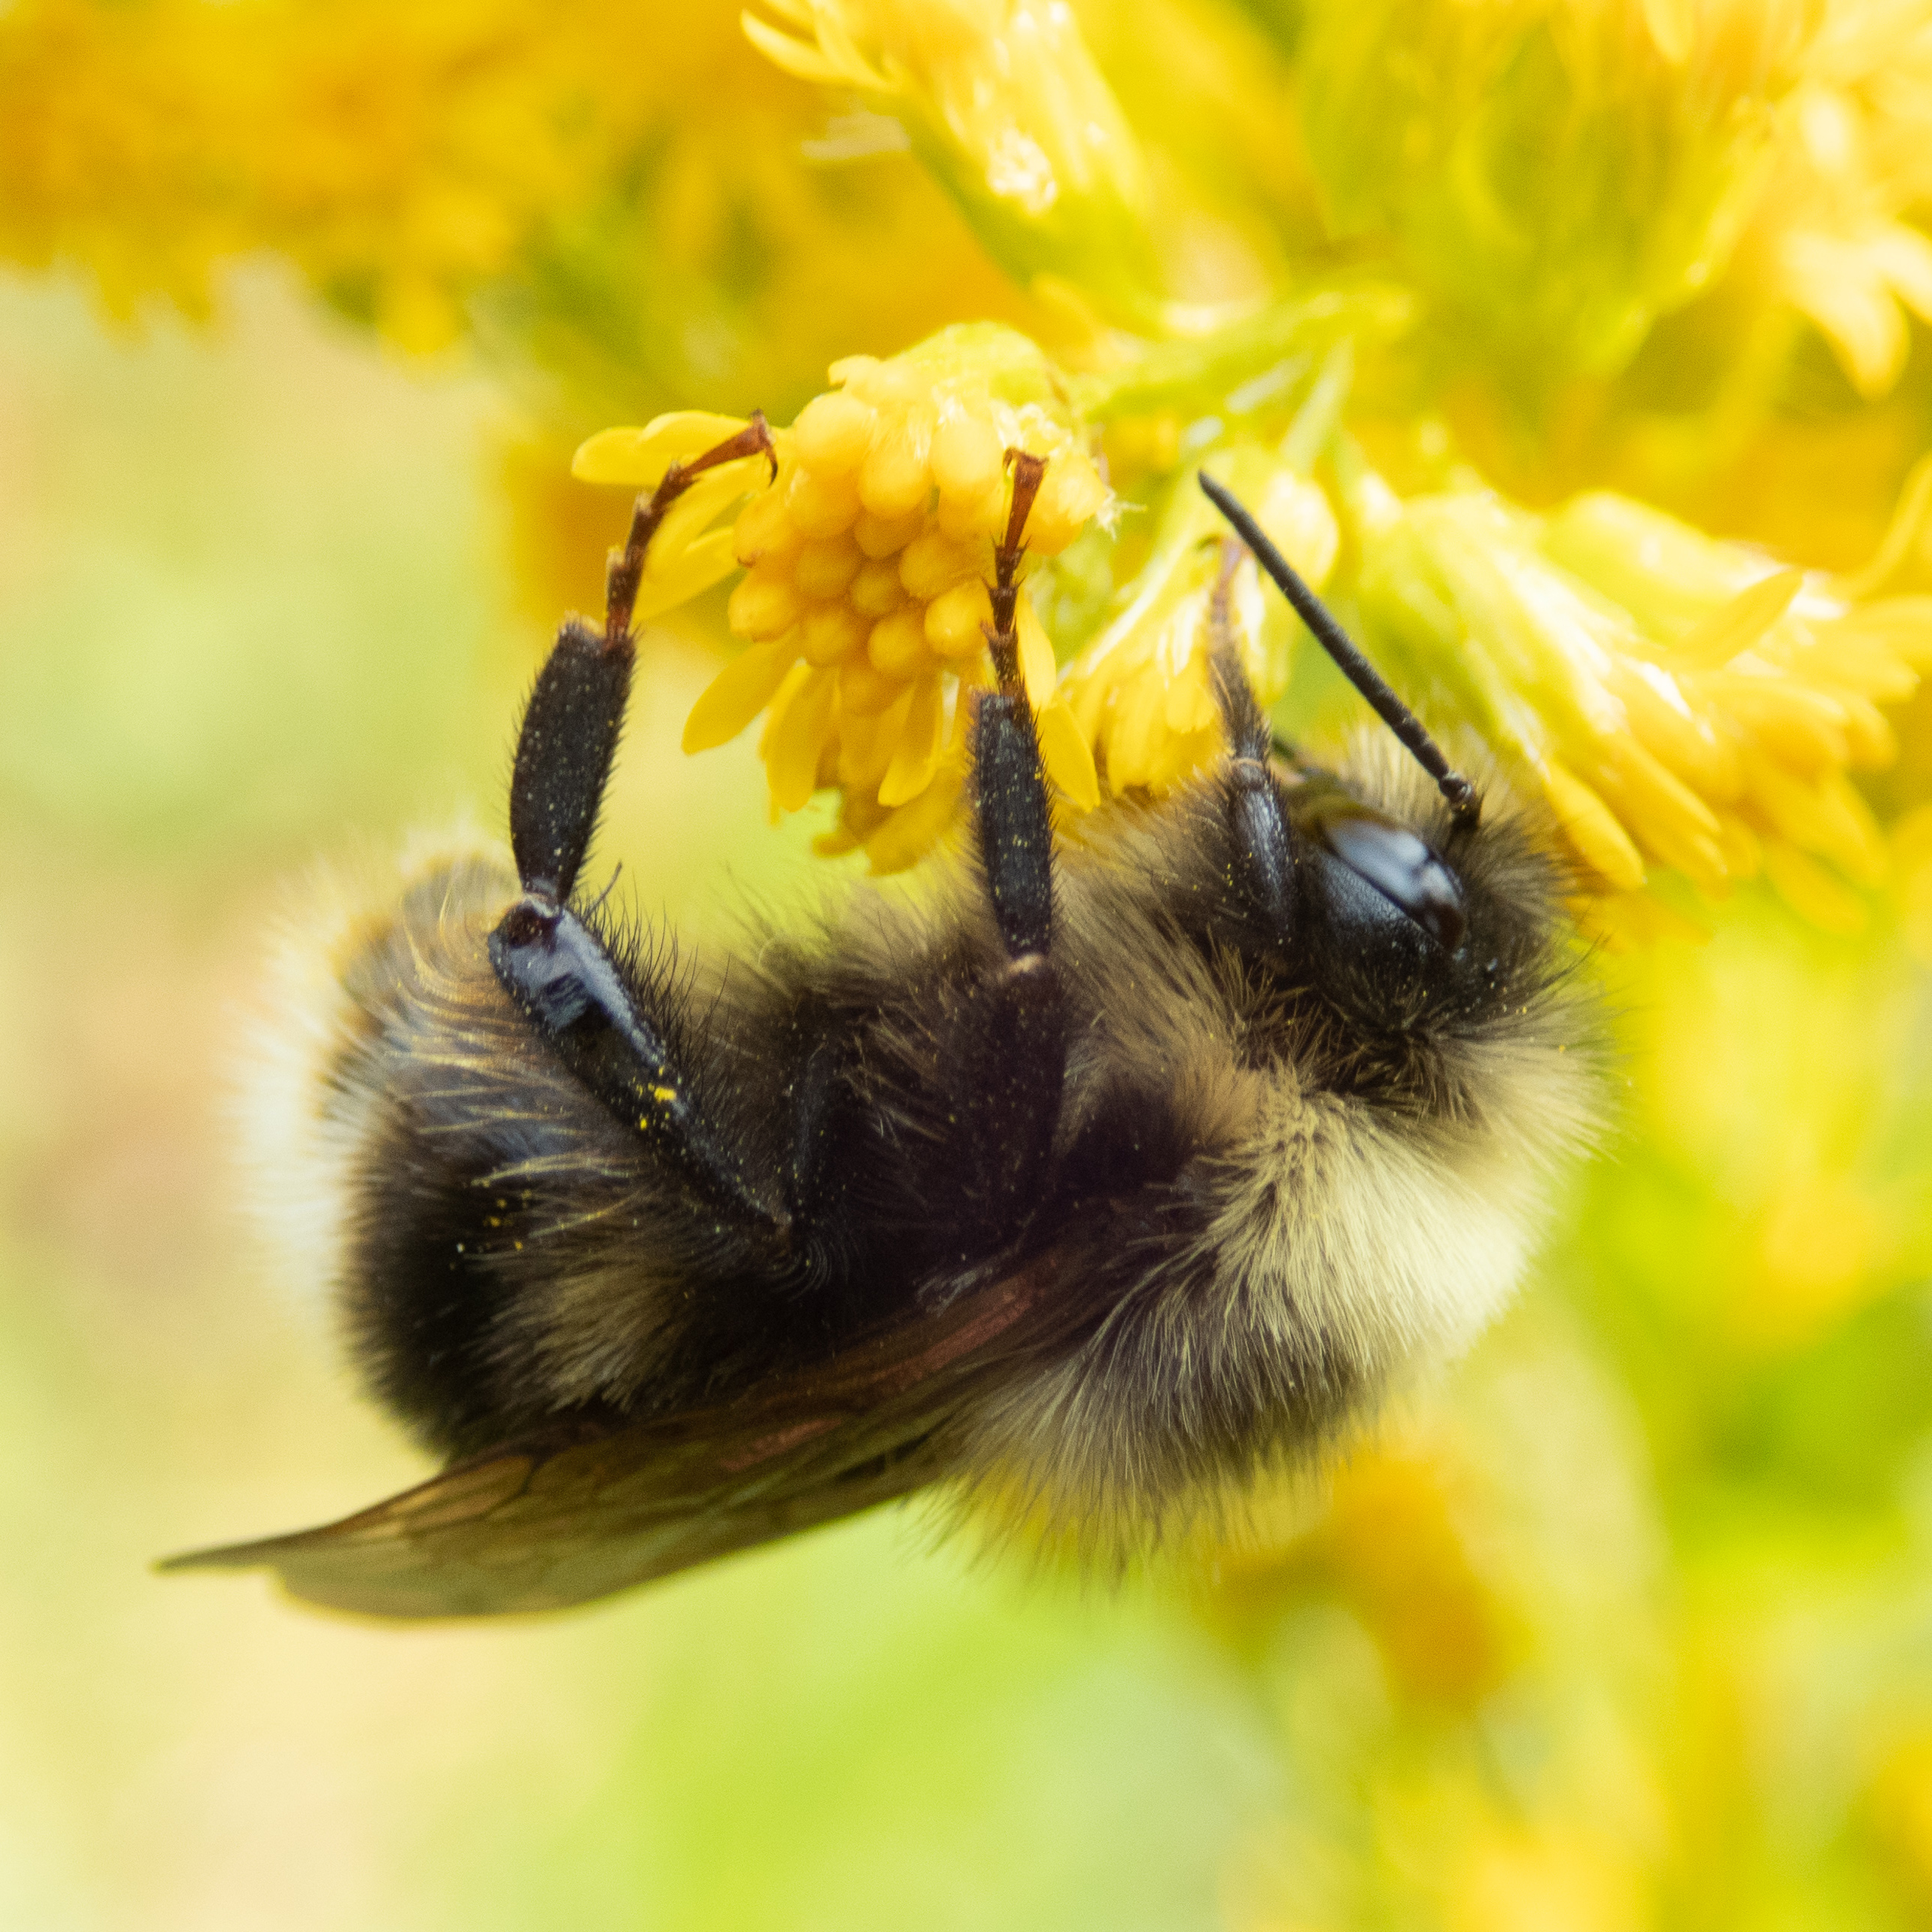 A fuzzy bumble with long hair bee clings upside down to a yellow flower.